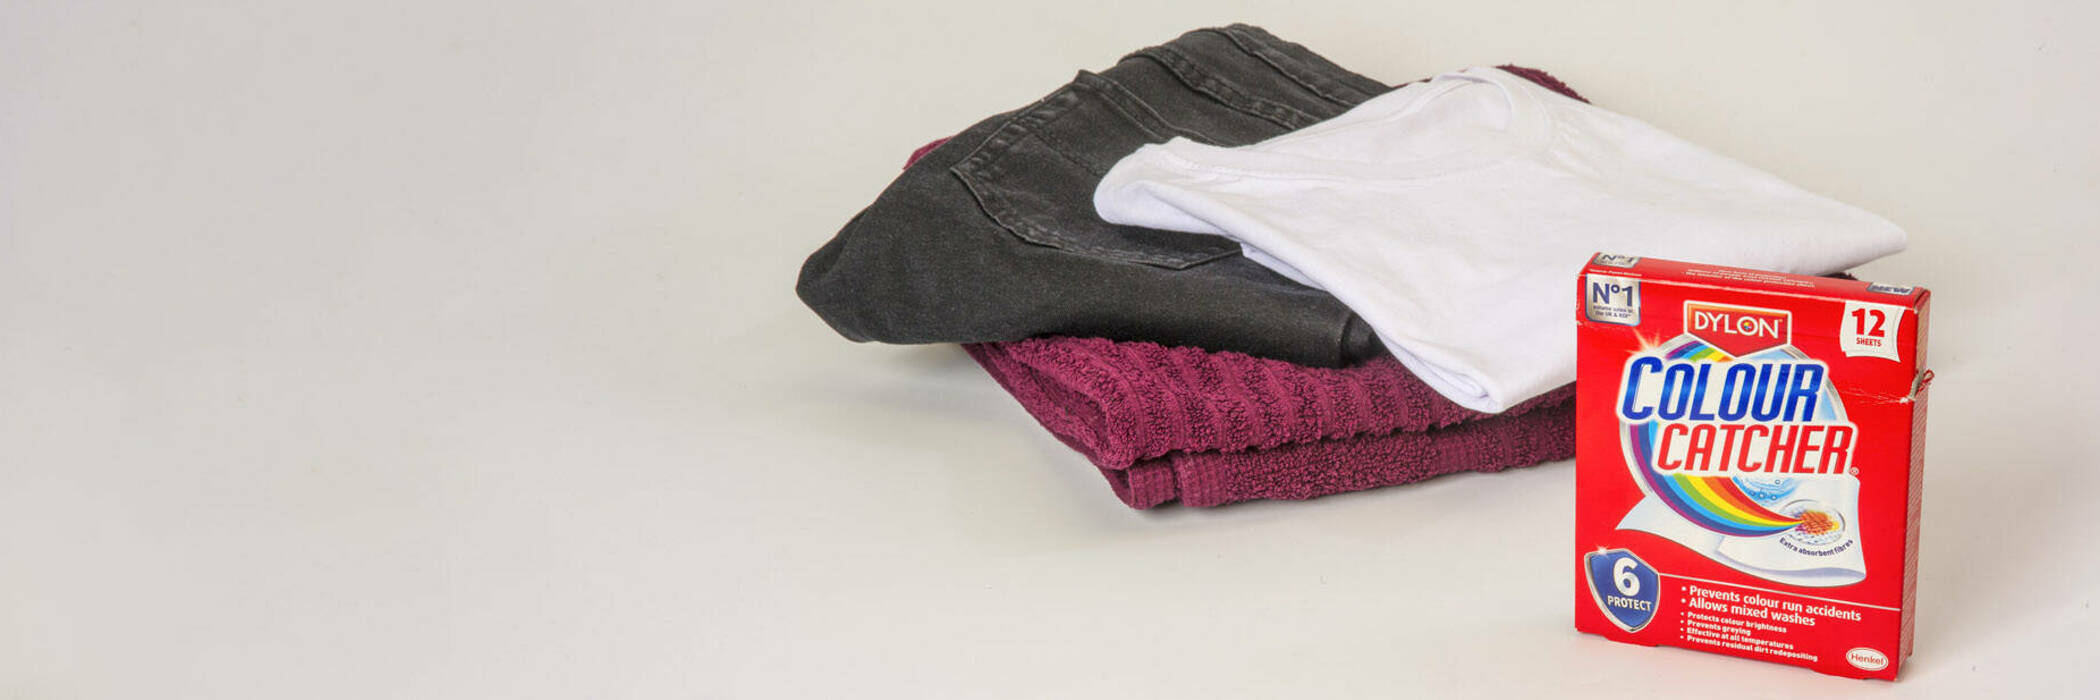 Dylon Colour Catcher box with red towel, black jeans and white shirt